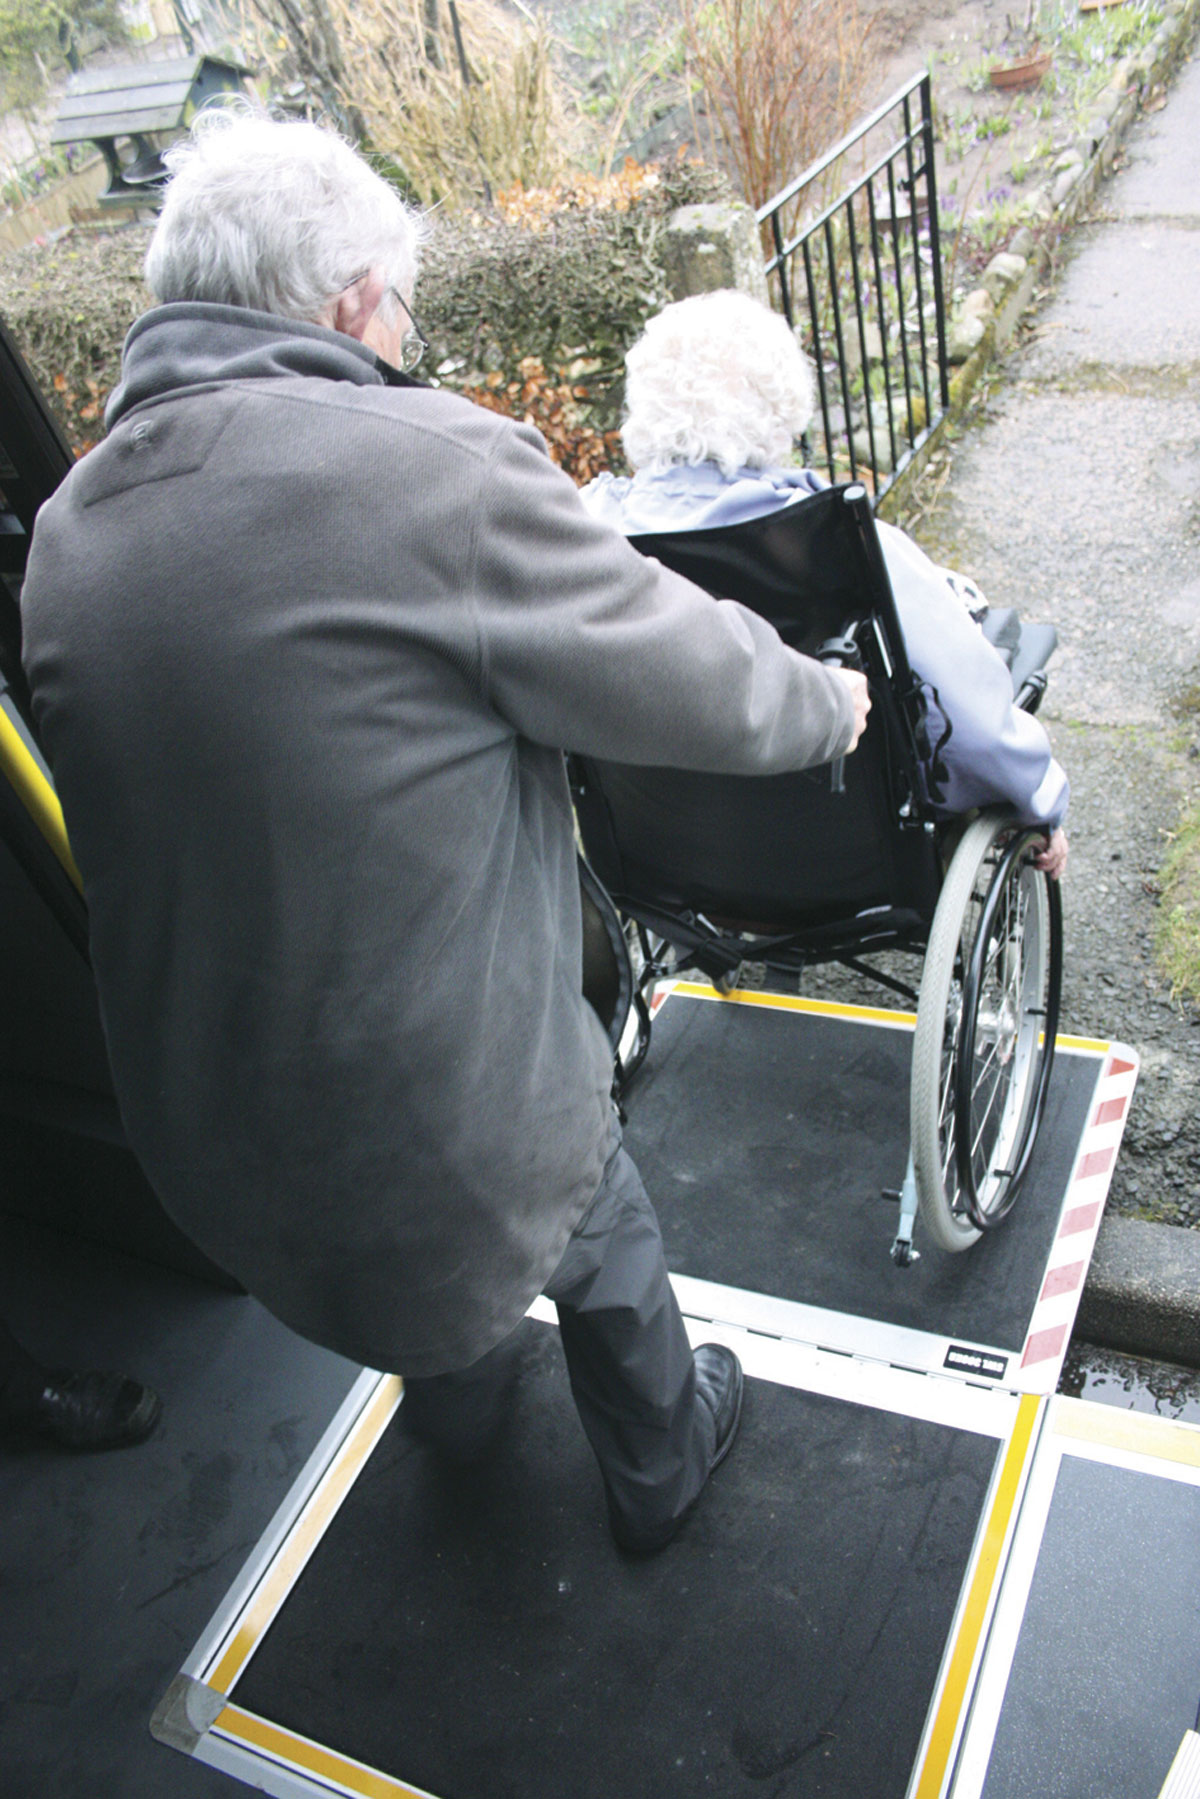 Exiting the vehicle is just as easy and both entering and leaving the vehicle can be easily tackled by wheelchair users without additional assistance